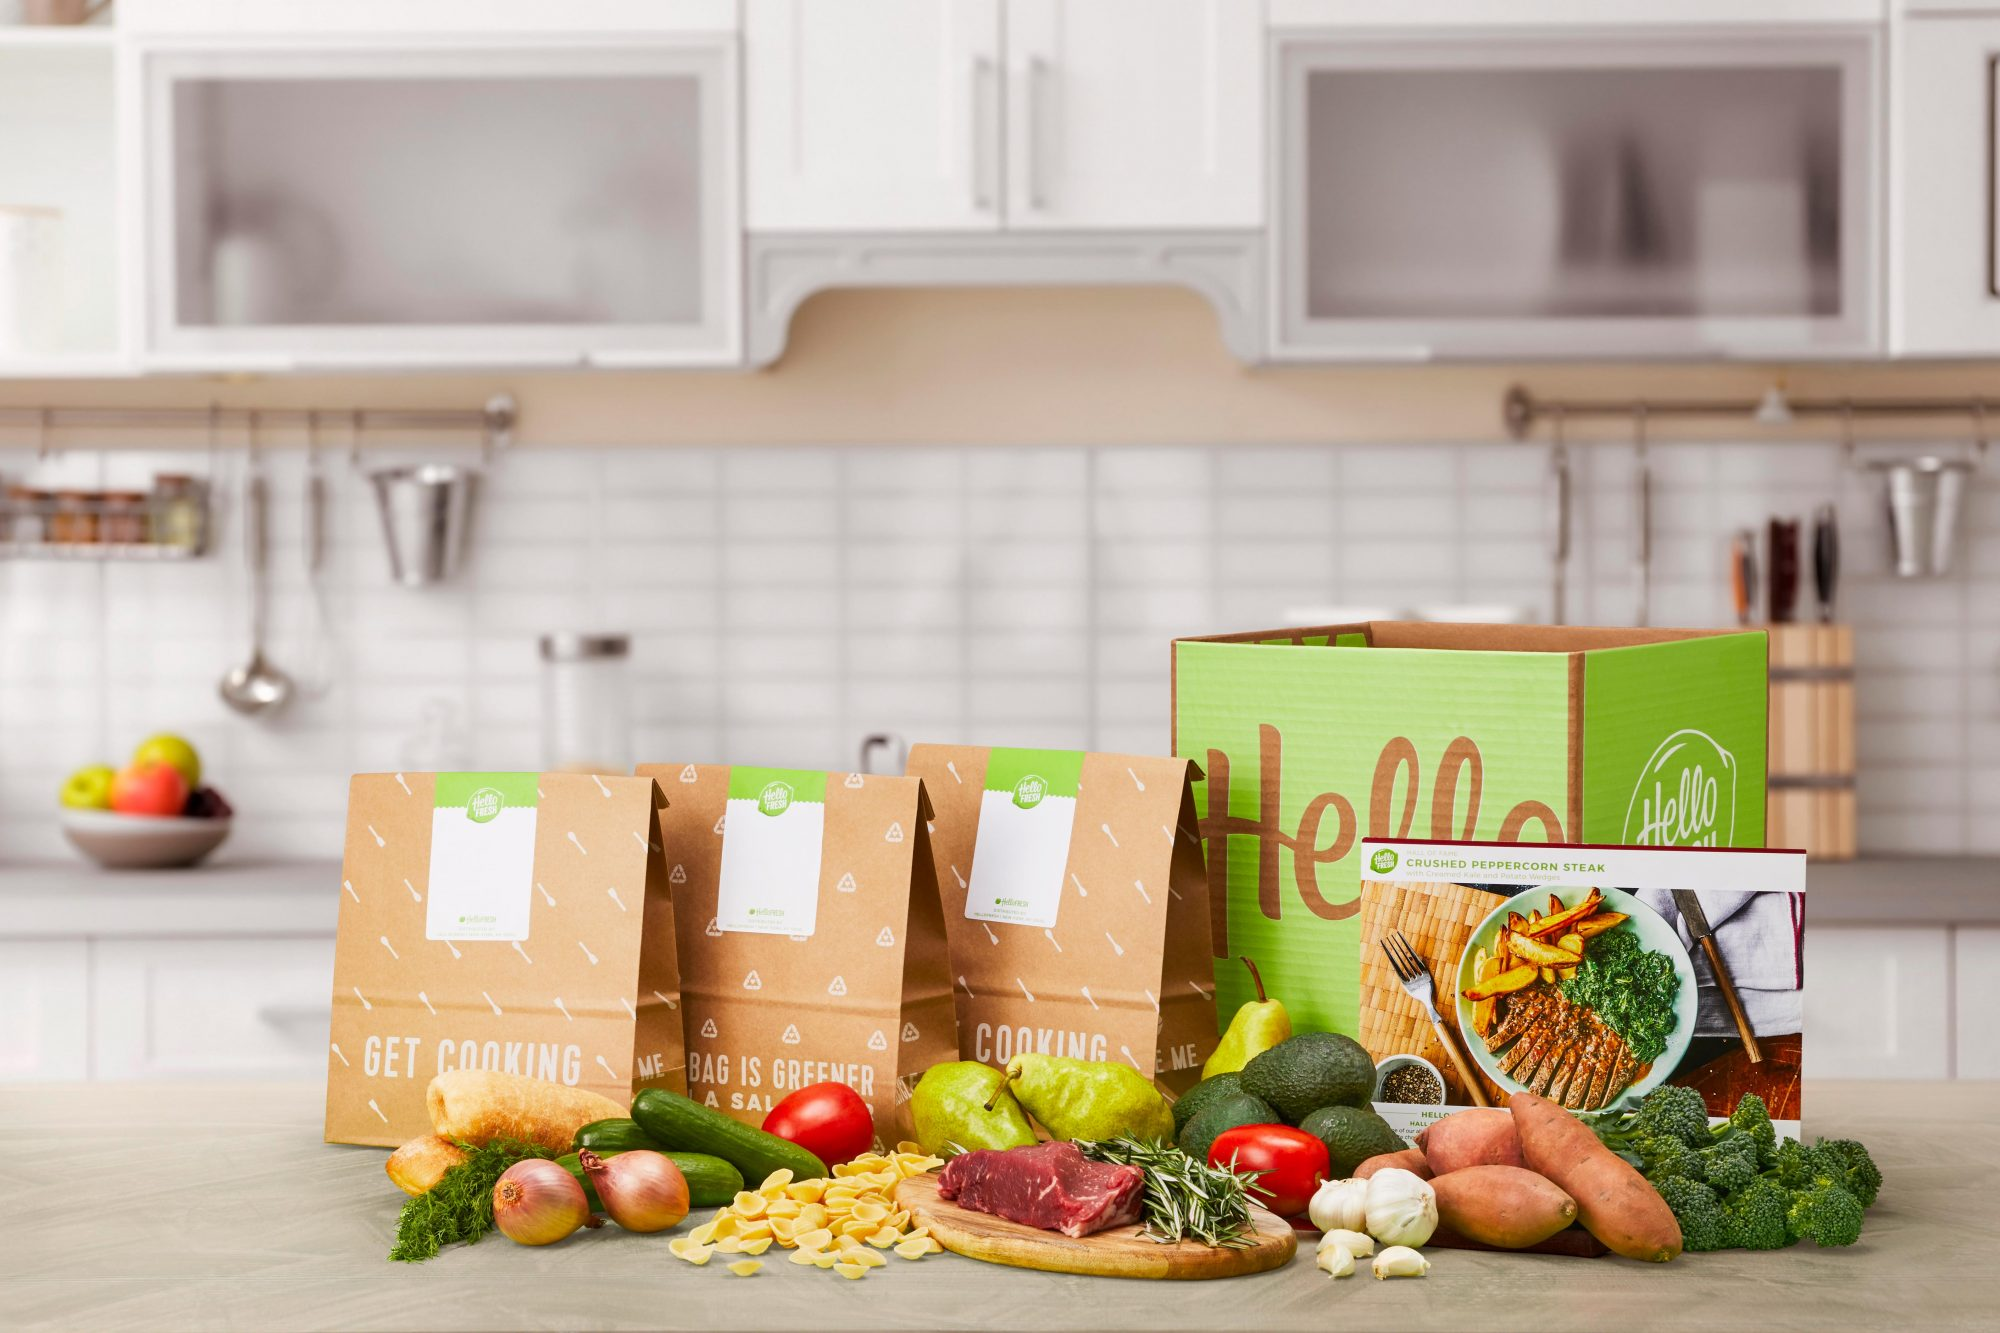 Best Delivery Food Box Subscriptions: Hello Fresh